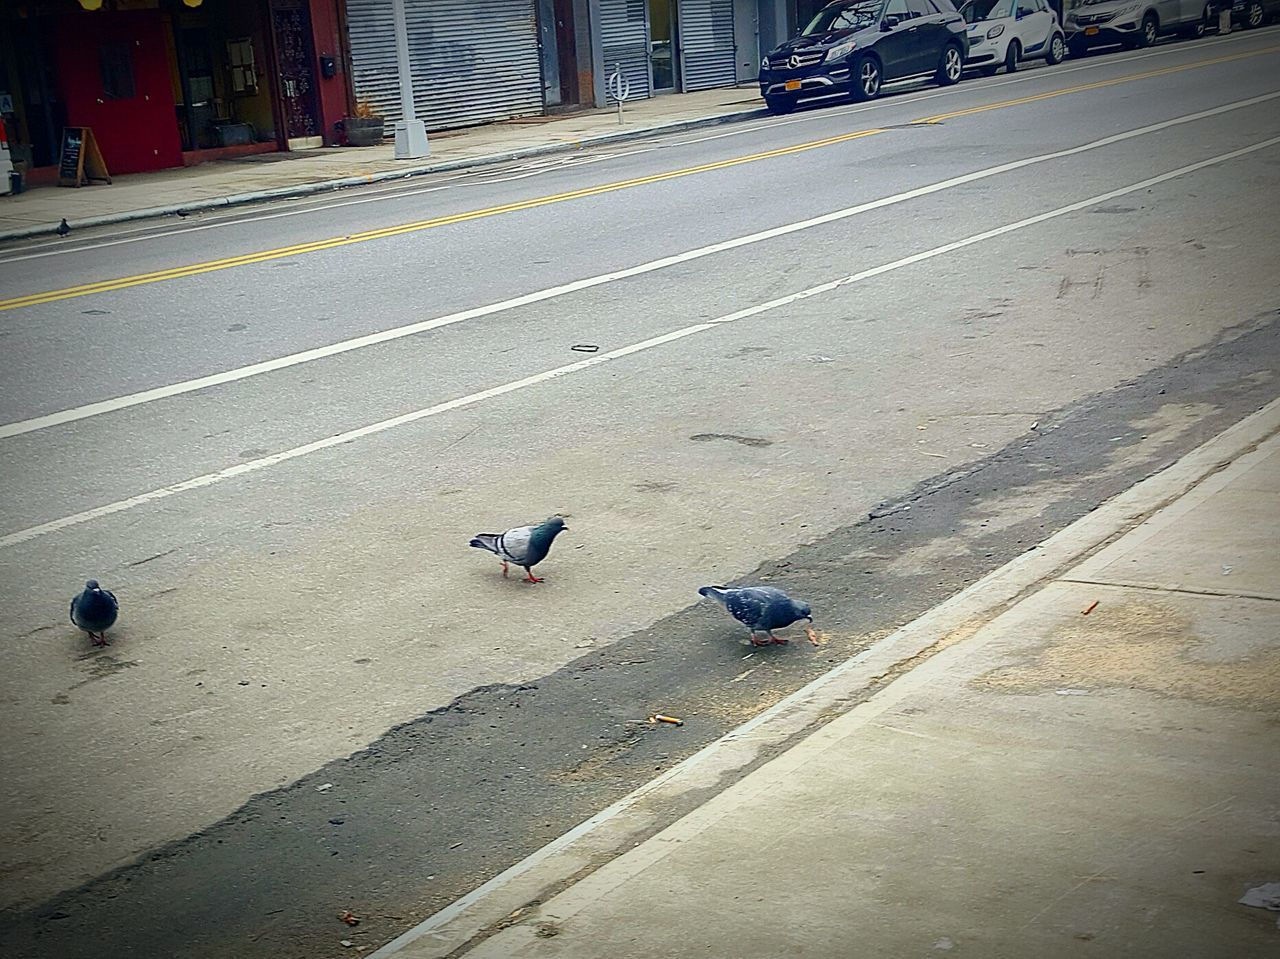 Hood Birds.. 😂 Street City Road Outdoors No People Animal Themes Pigeonslife Ratswithwings Noflyingsouth Eyemphotography Fresh On Eyeem  EyeEmNewHere Fresh On Eyeem  Adapted To The City Williamsburg, Brooklyn